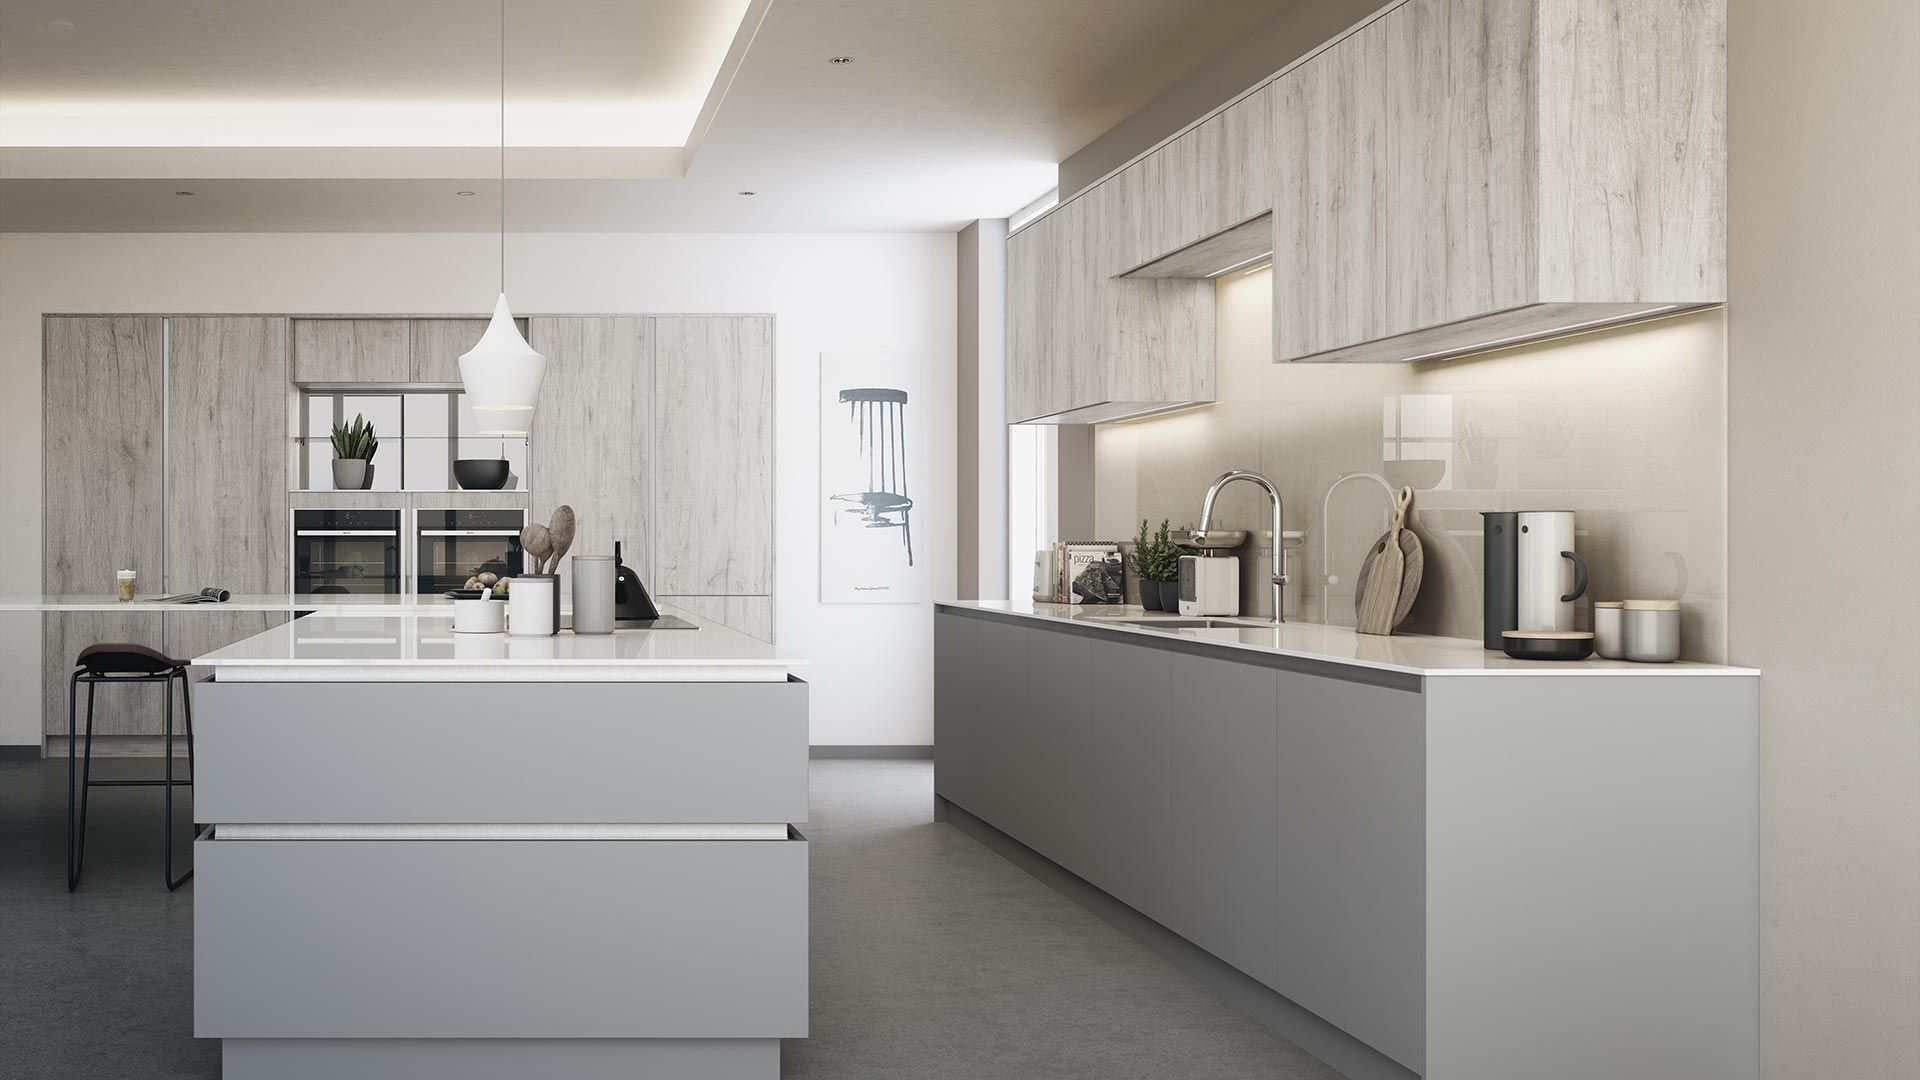 Use A Contrast Of Wood And Soft Textured Finishes In Your Kitchen